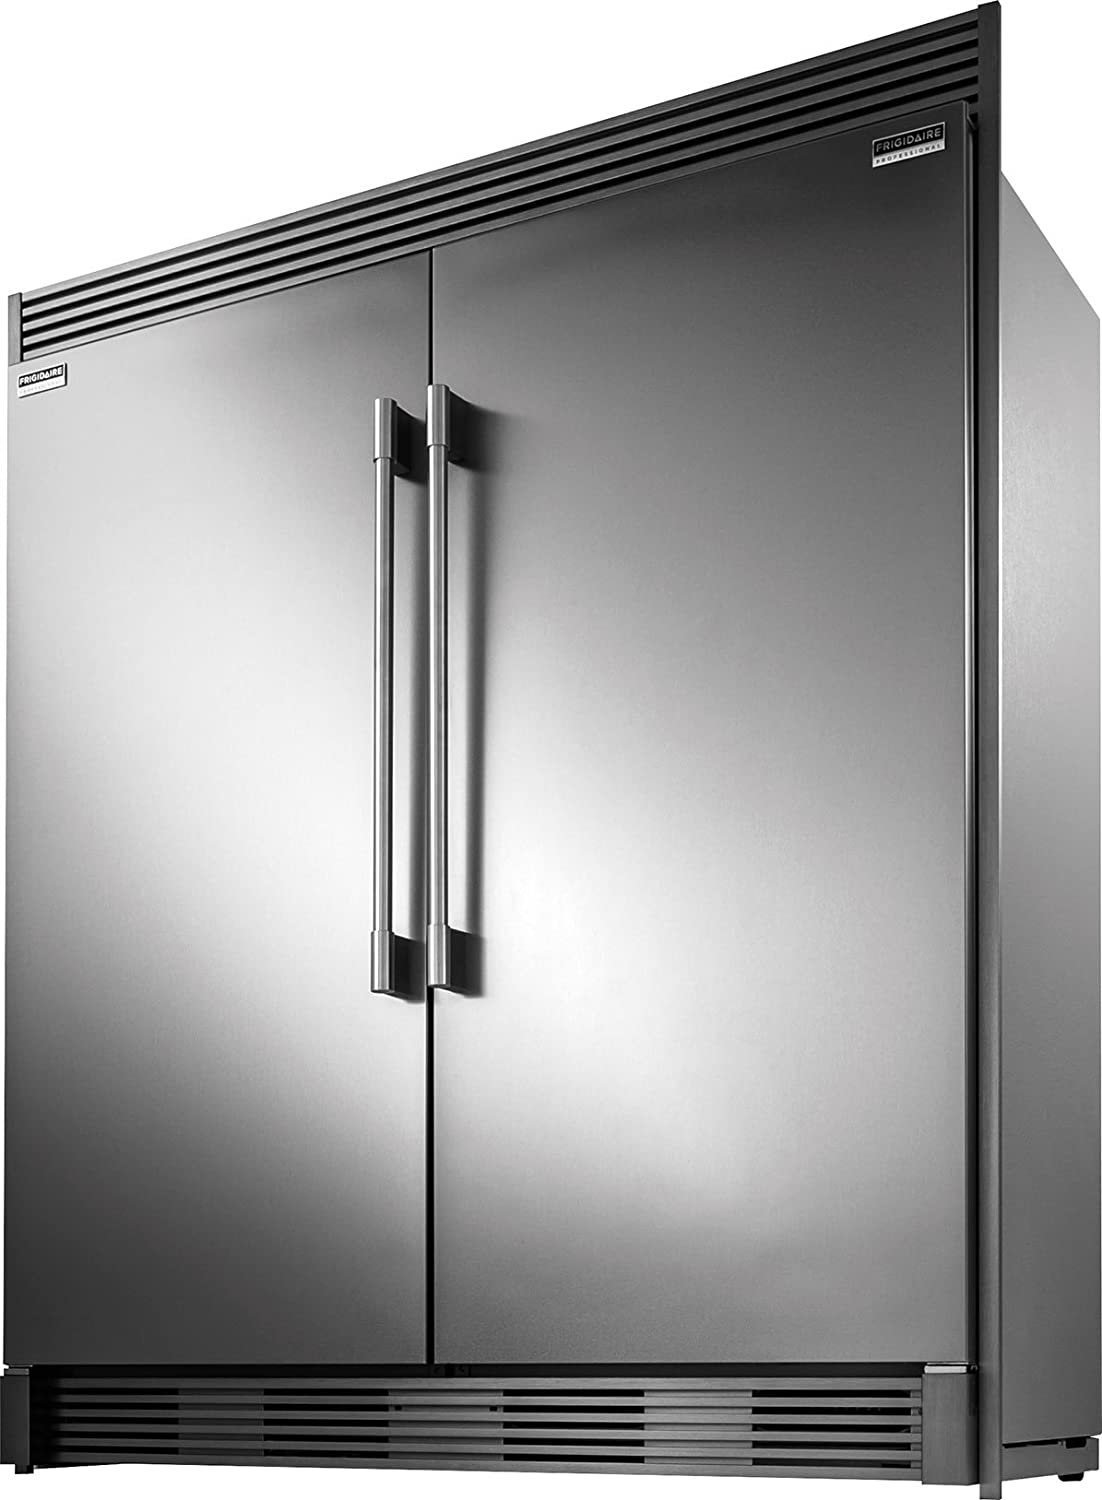 Incroyable Amazon.com: Frigidaire PROFESSIONAL Stainless Steel Refrigerator Freezer  Combo U0026 Trim FPRU19F8RF FPFU19F8RF TRIMKITEZ2: Appliances